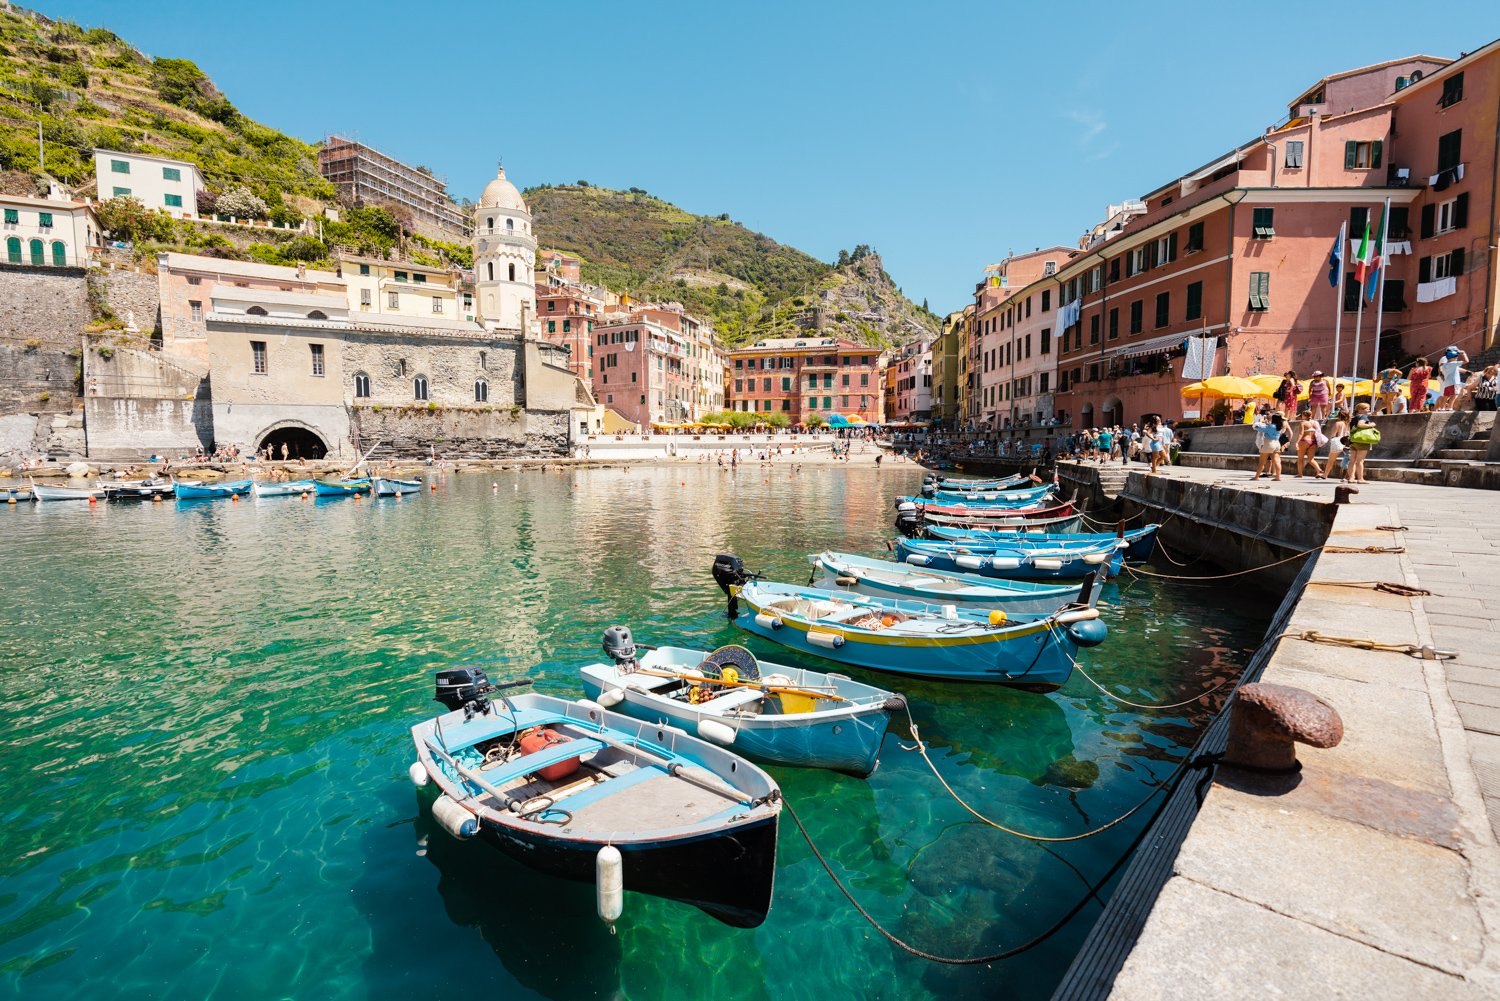 Boats lined up at Promenade in Vernazza Cinque Terre